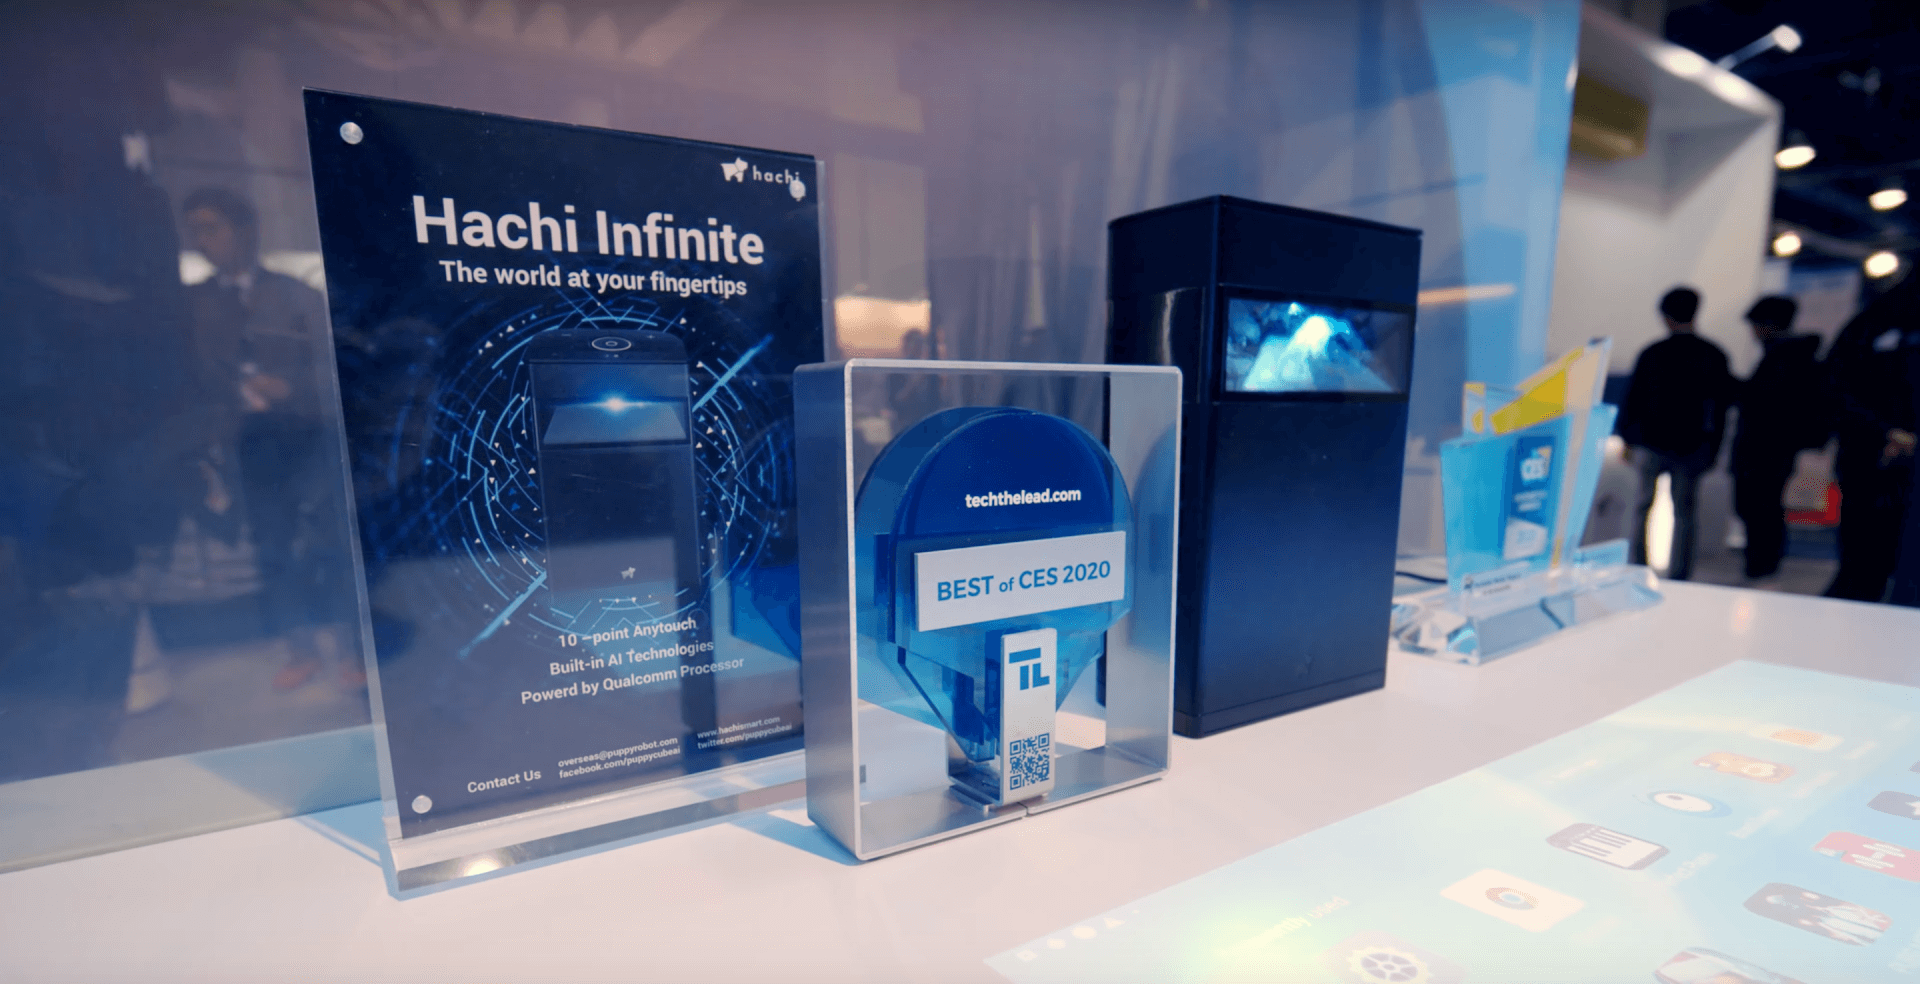 Hachi Infinite Impresses with Latency-Free Touchscreen Projection